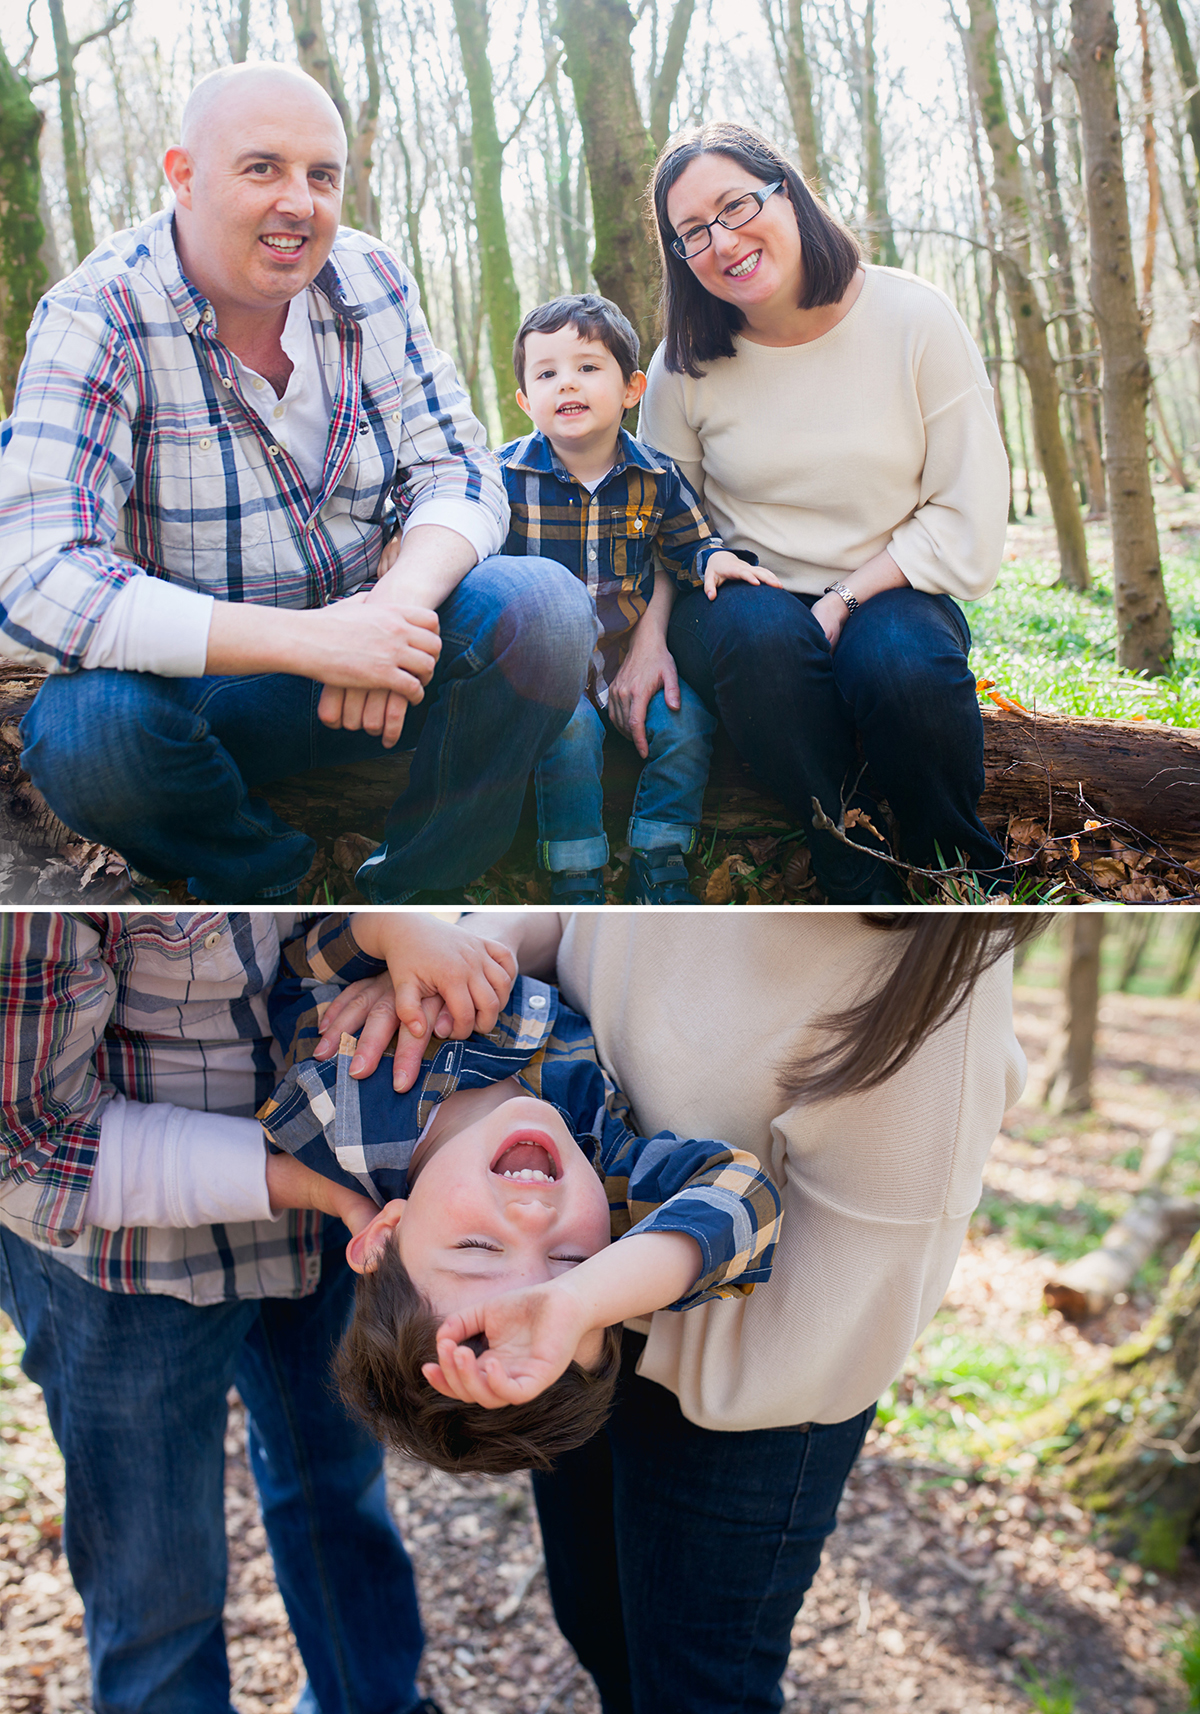 A Farewell Outdoor Family Photoshoot for the Battle family